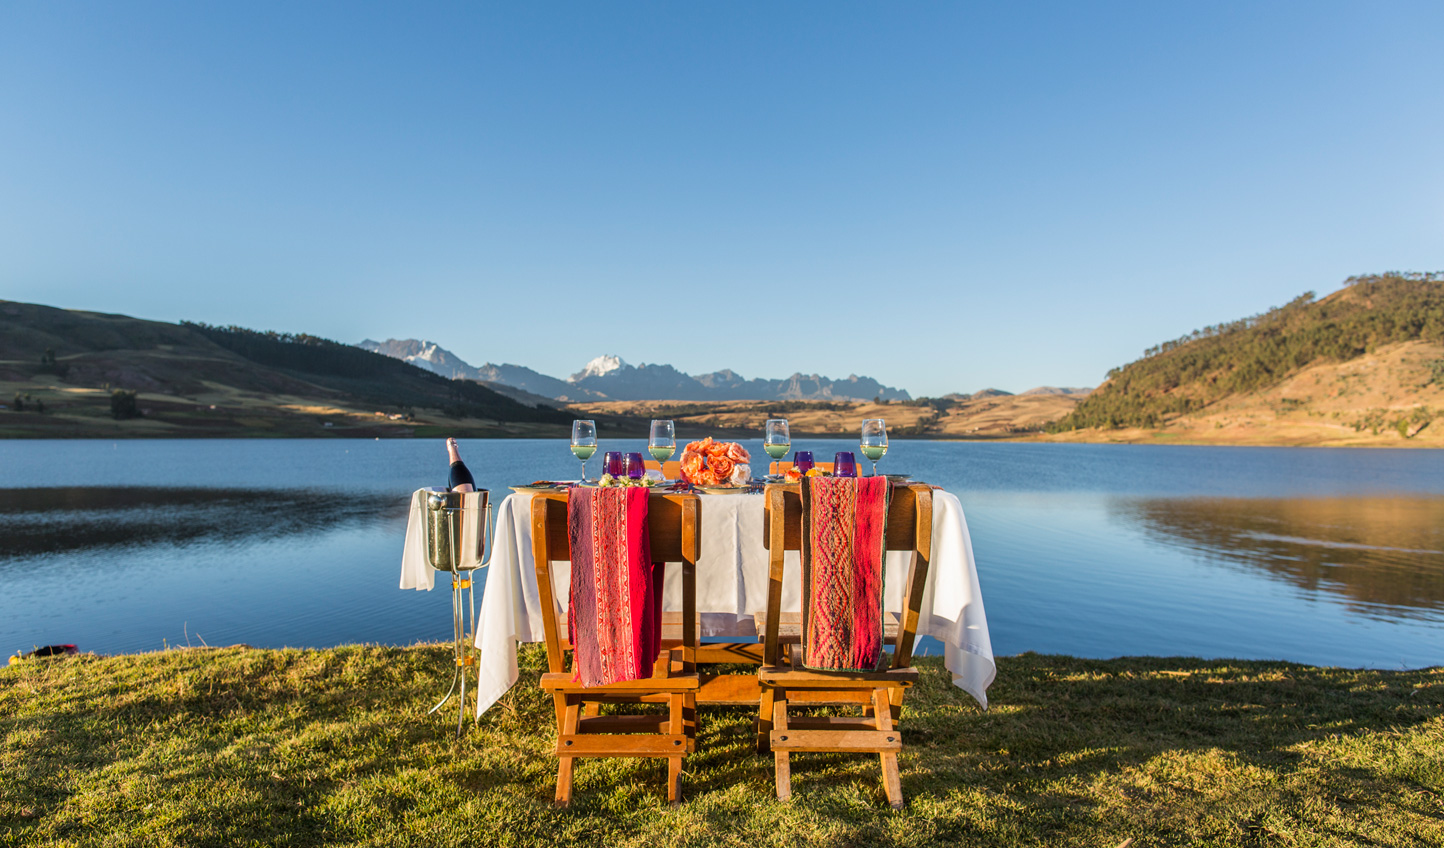 Embrace pachamama, or Mother Earth, and enjoy a picnic in the great outdoors